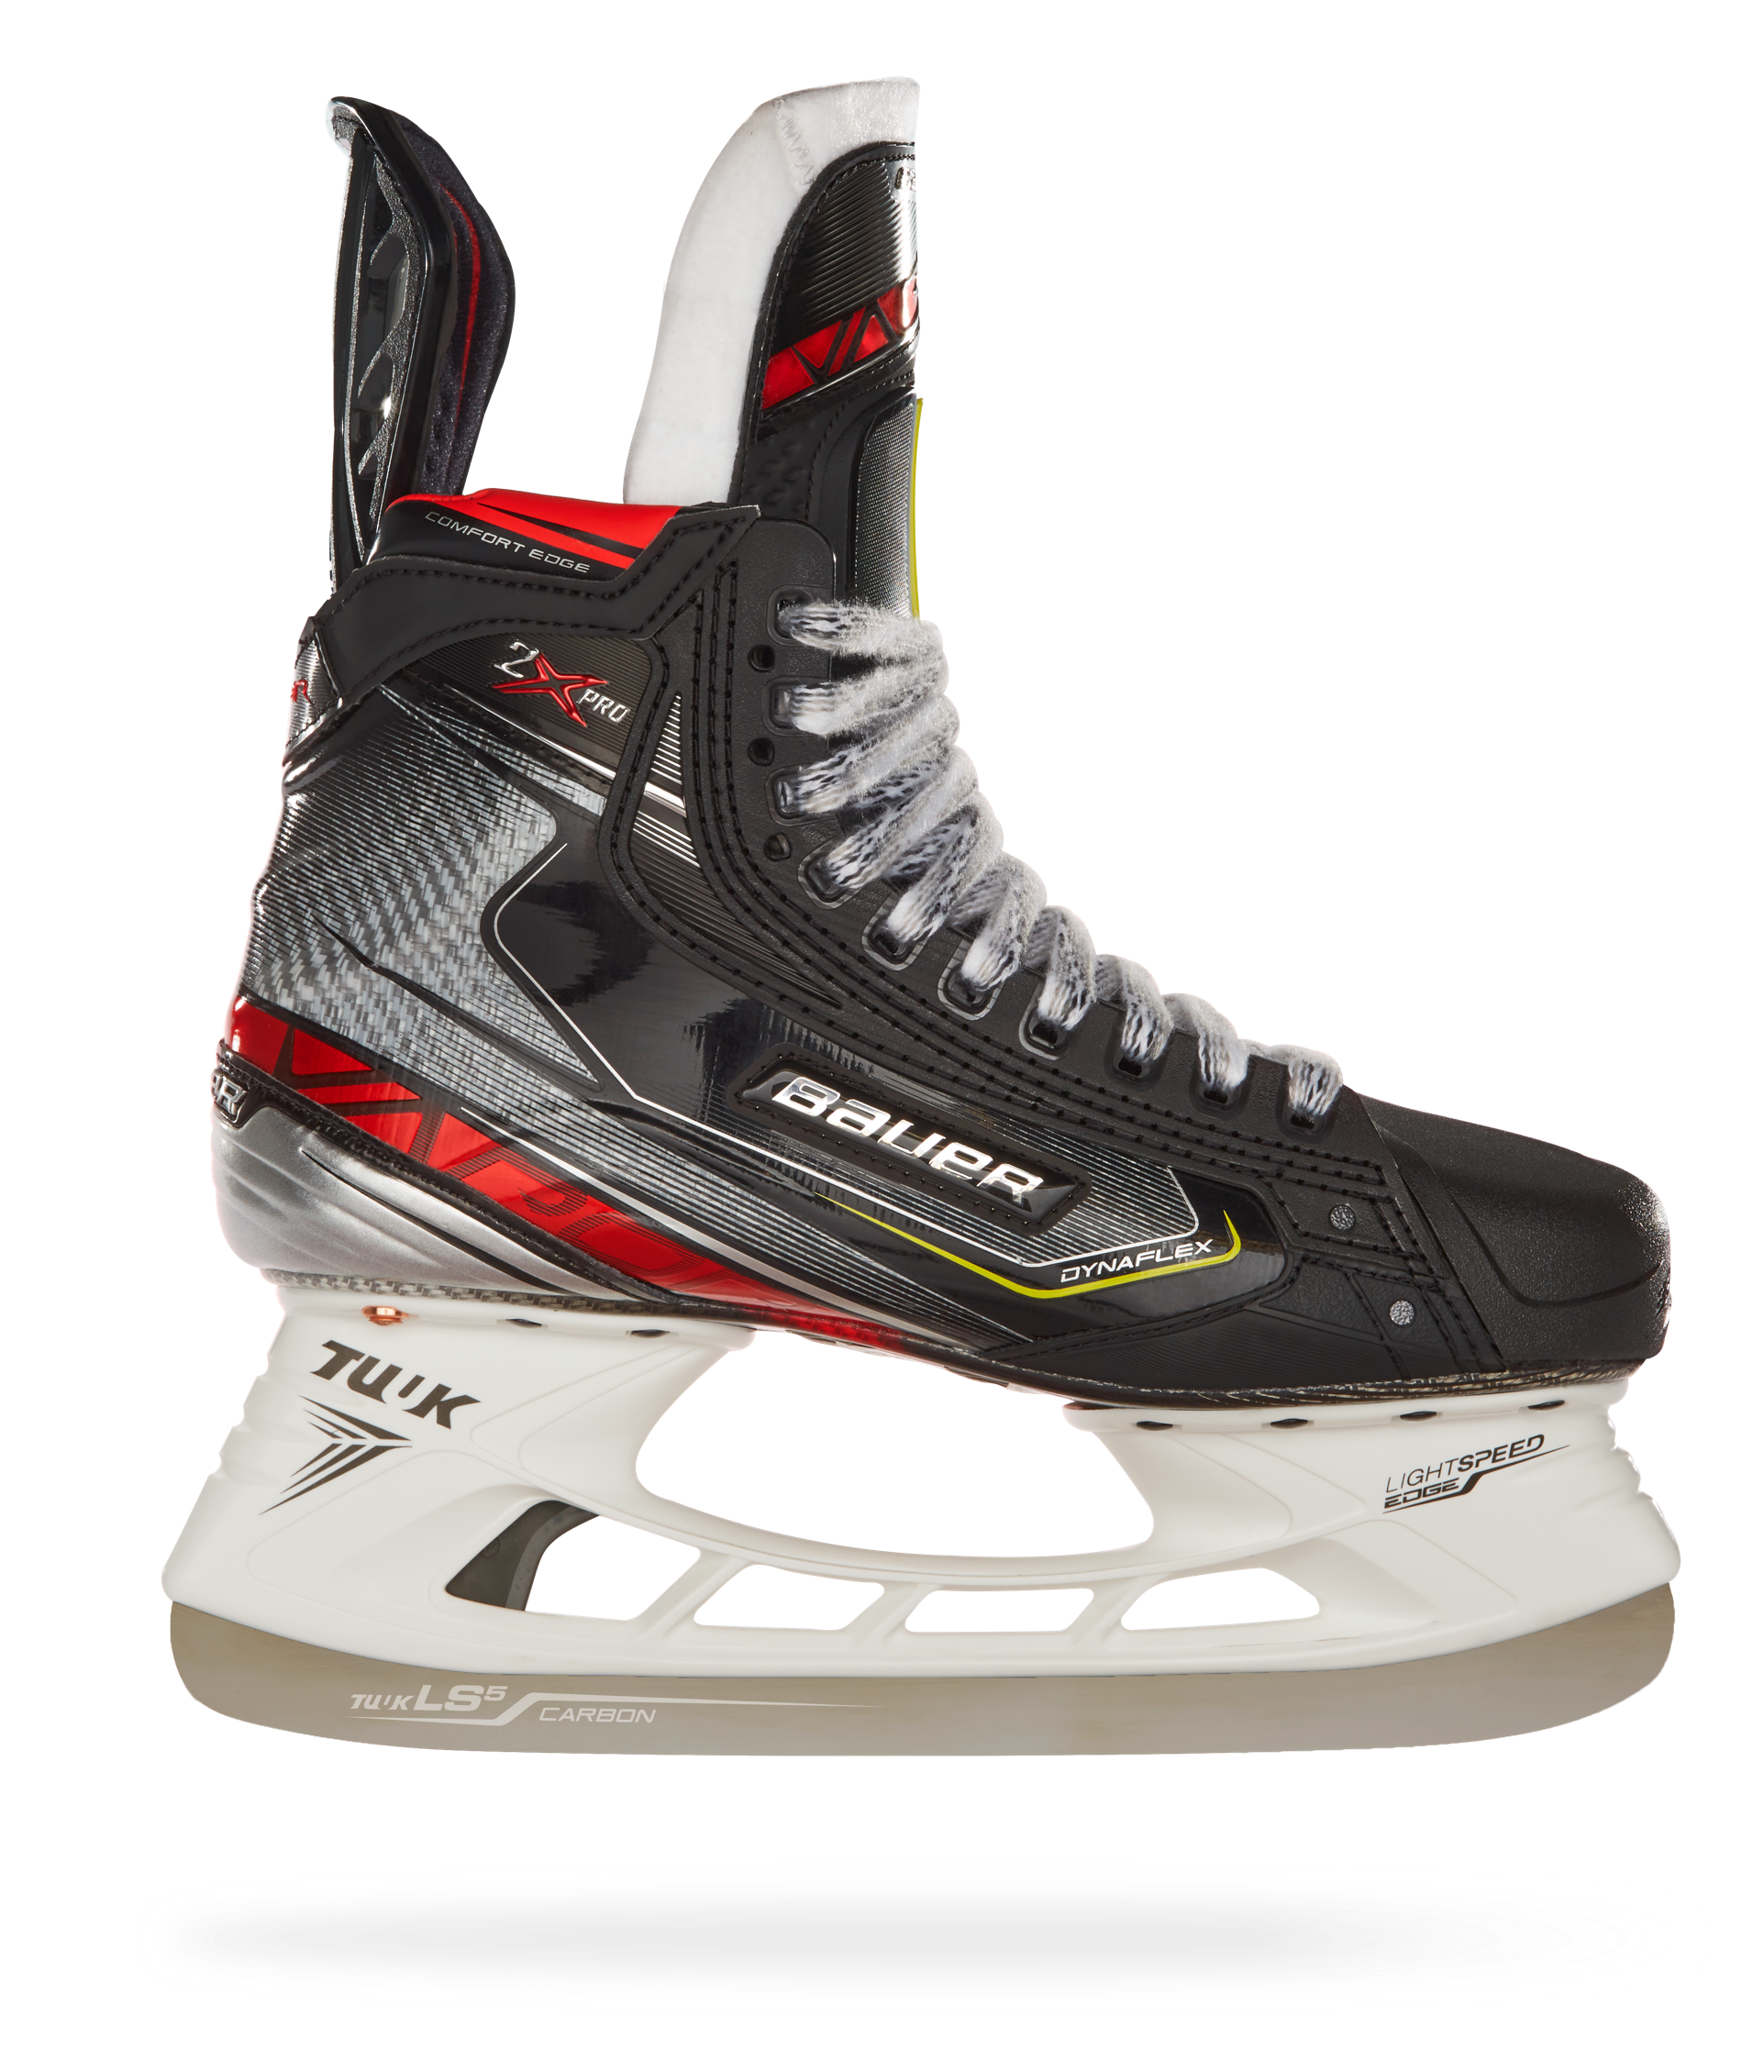 3Fit-Slider-Vapor-Skate@3x